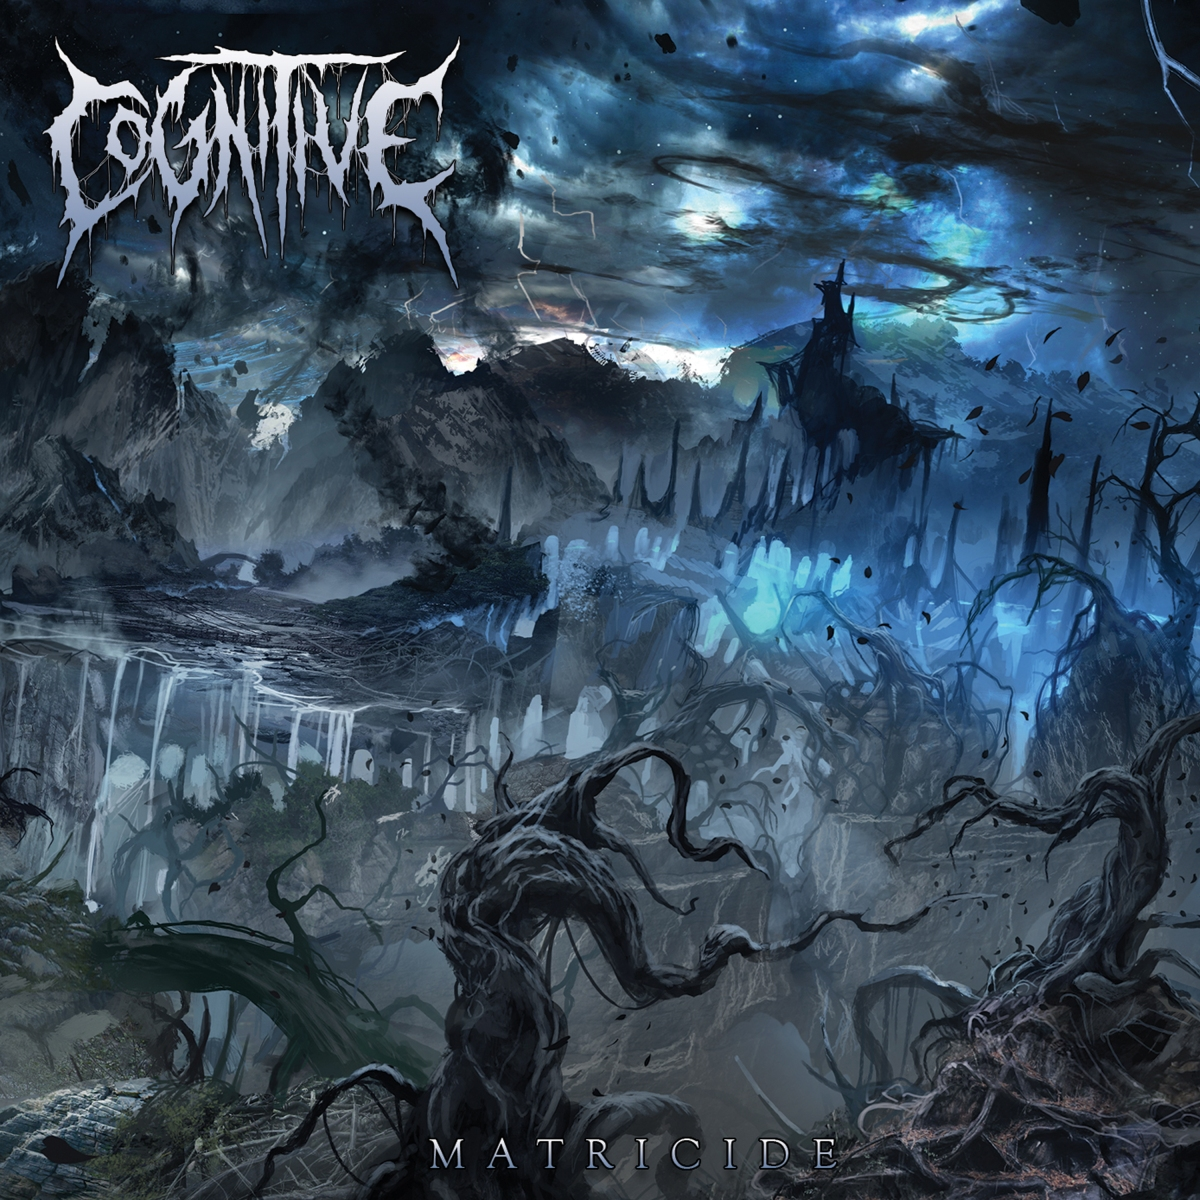 Album Review: Matricide - Cognitive